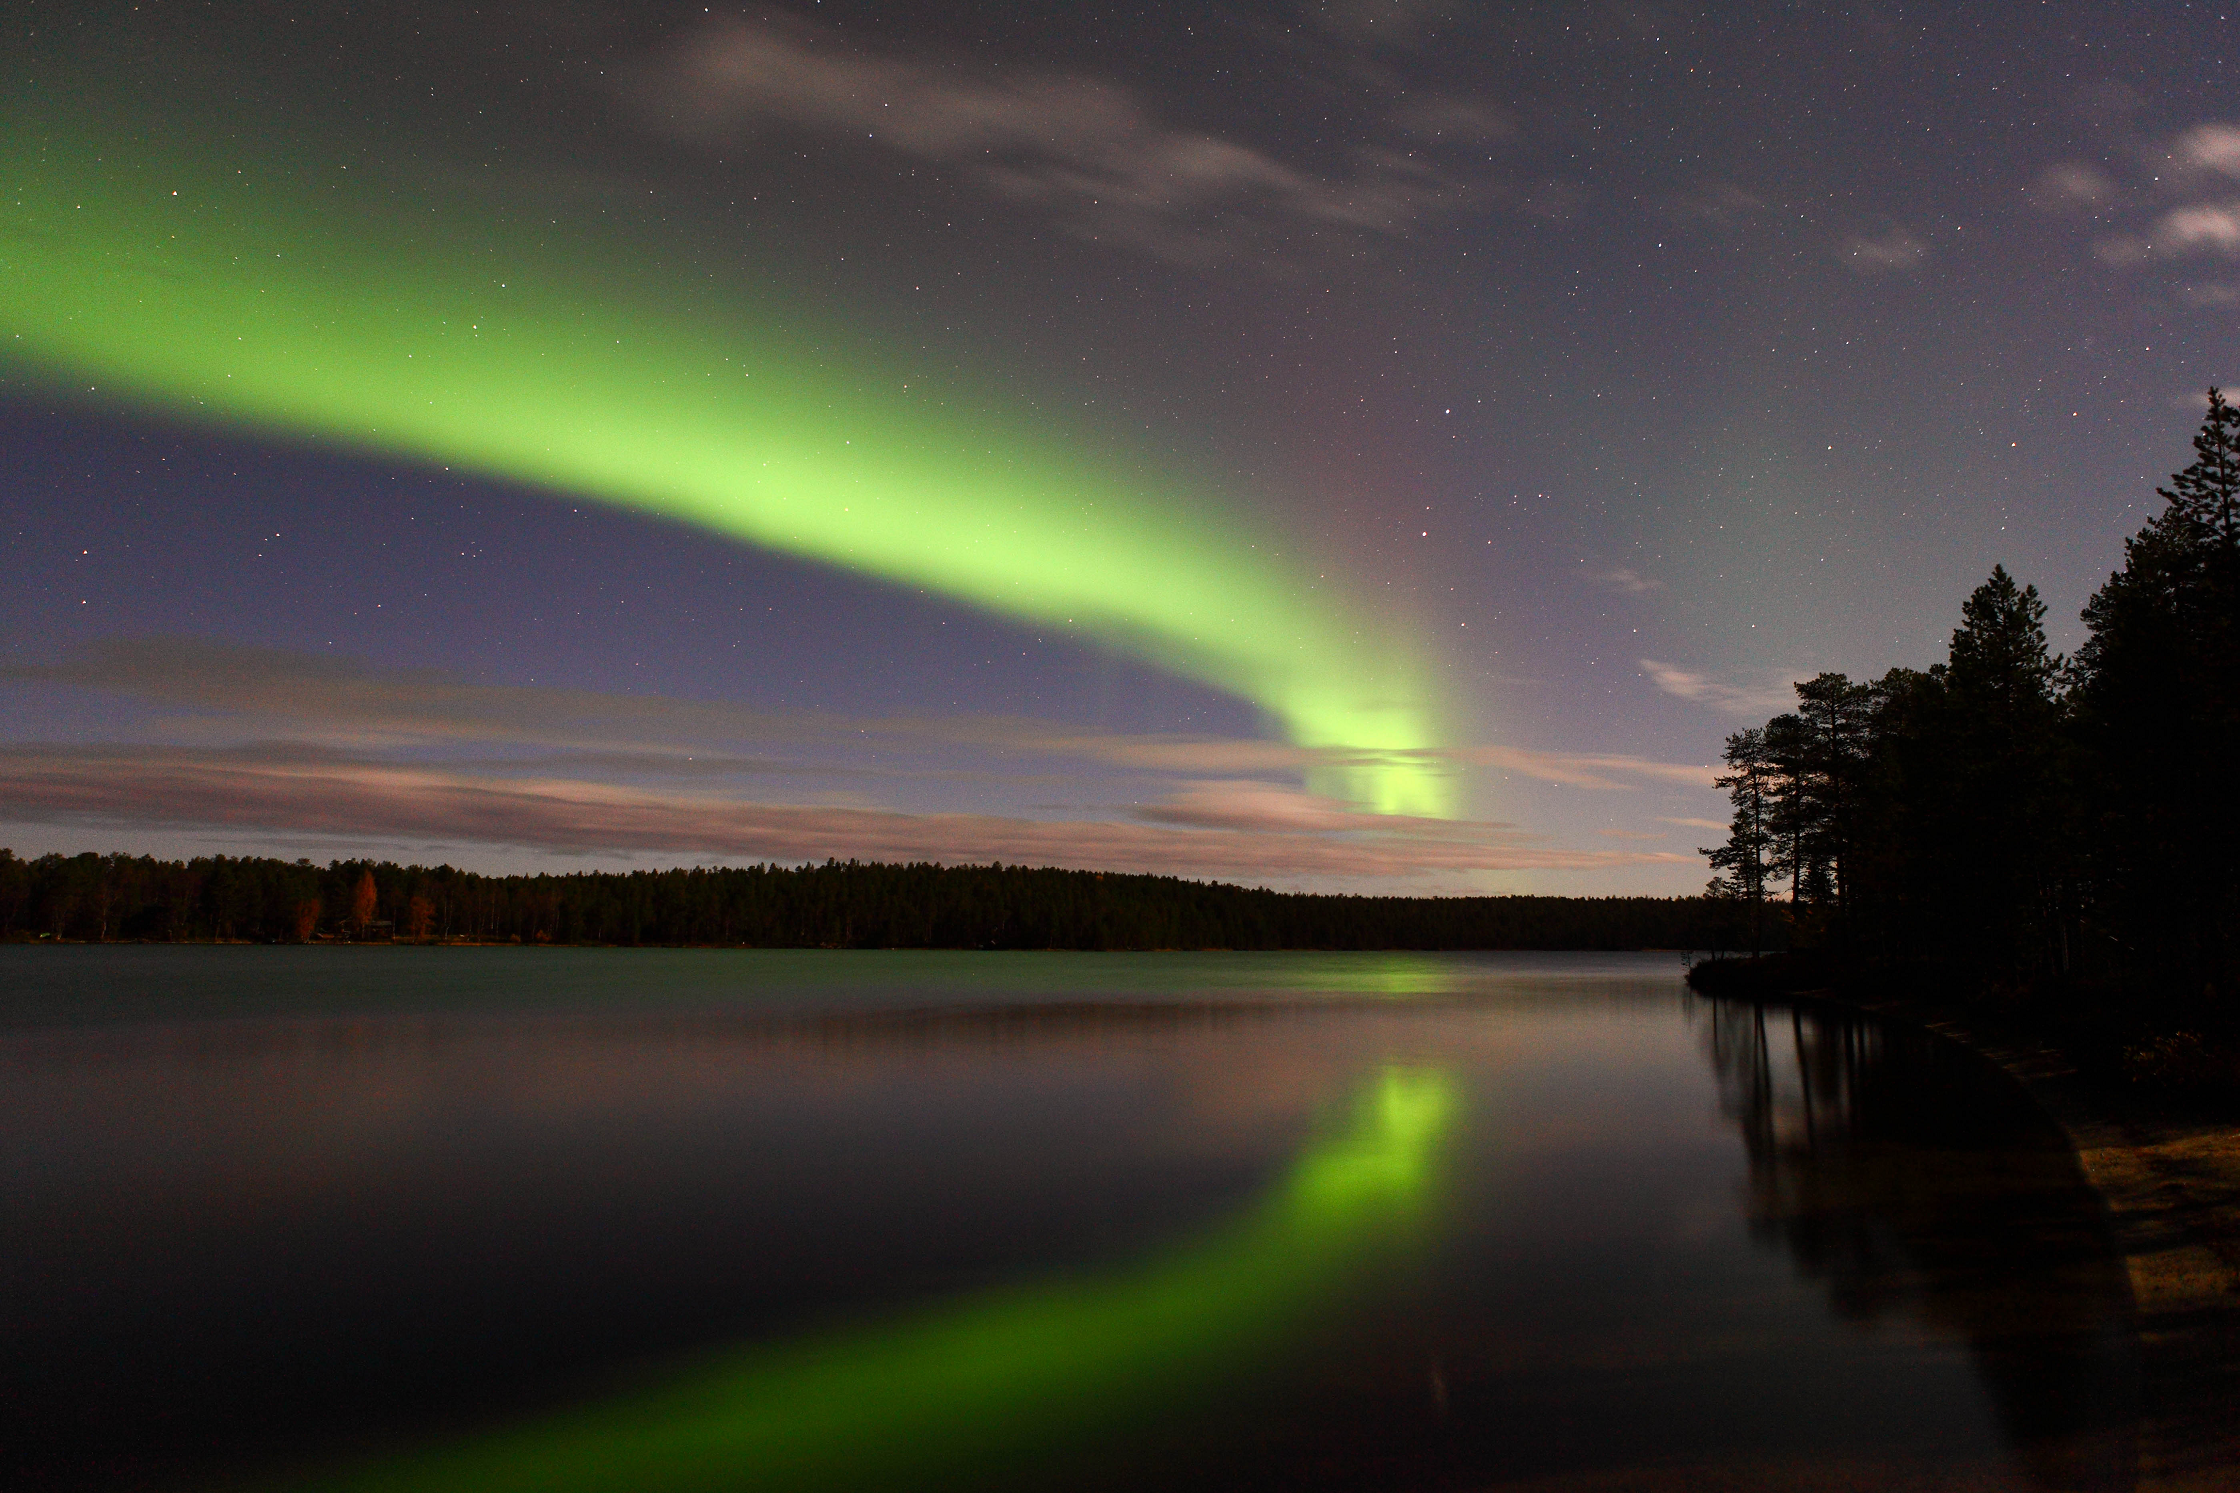 The northern lights have already arrived in Finland!